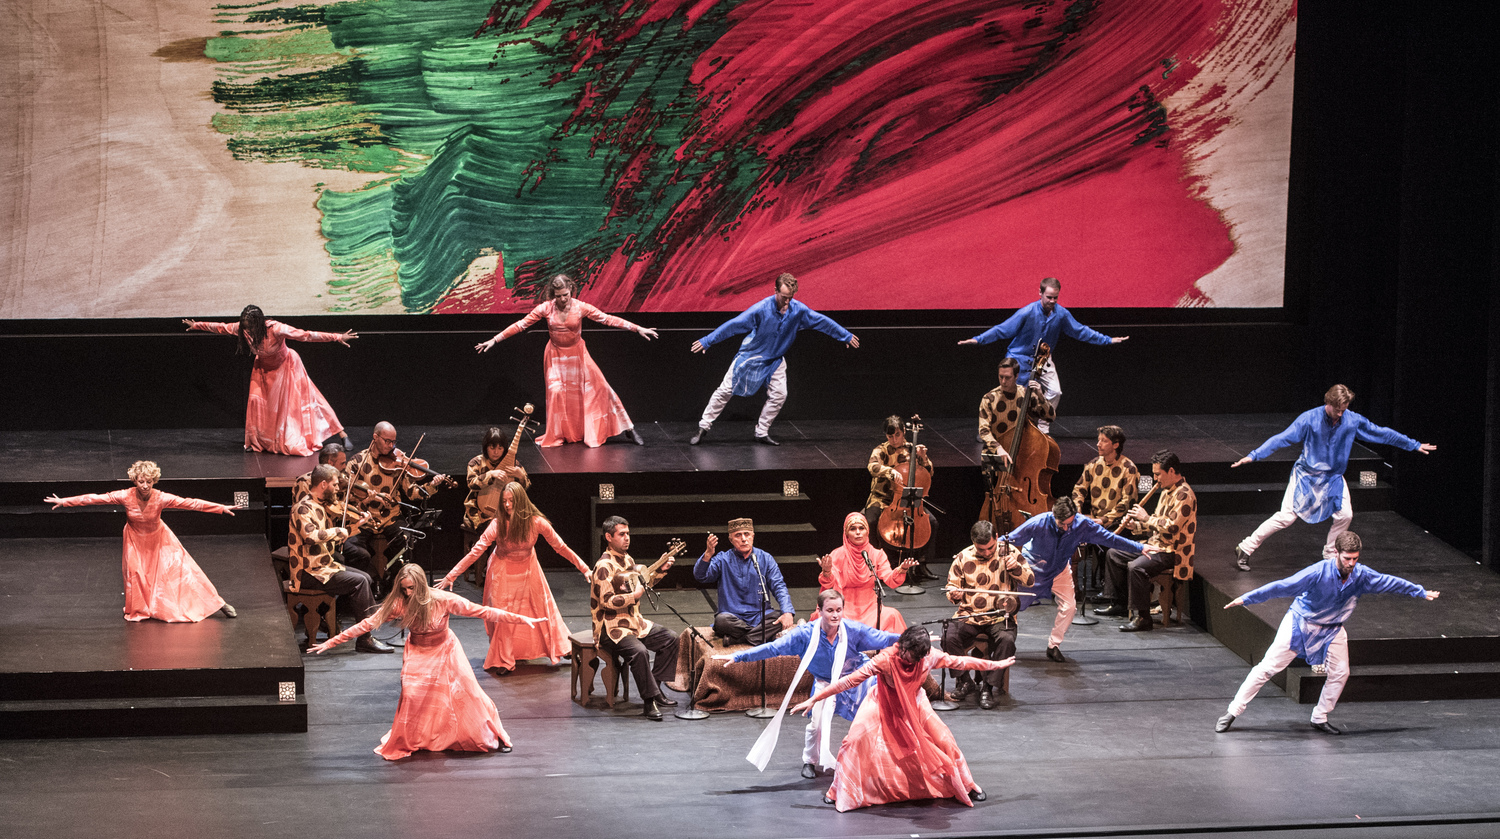 BWW Review: MARK MORRIS DANCE GROUP Delivers a Finessed, Yet Disconnected, Persian Love Story